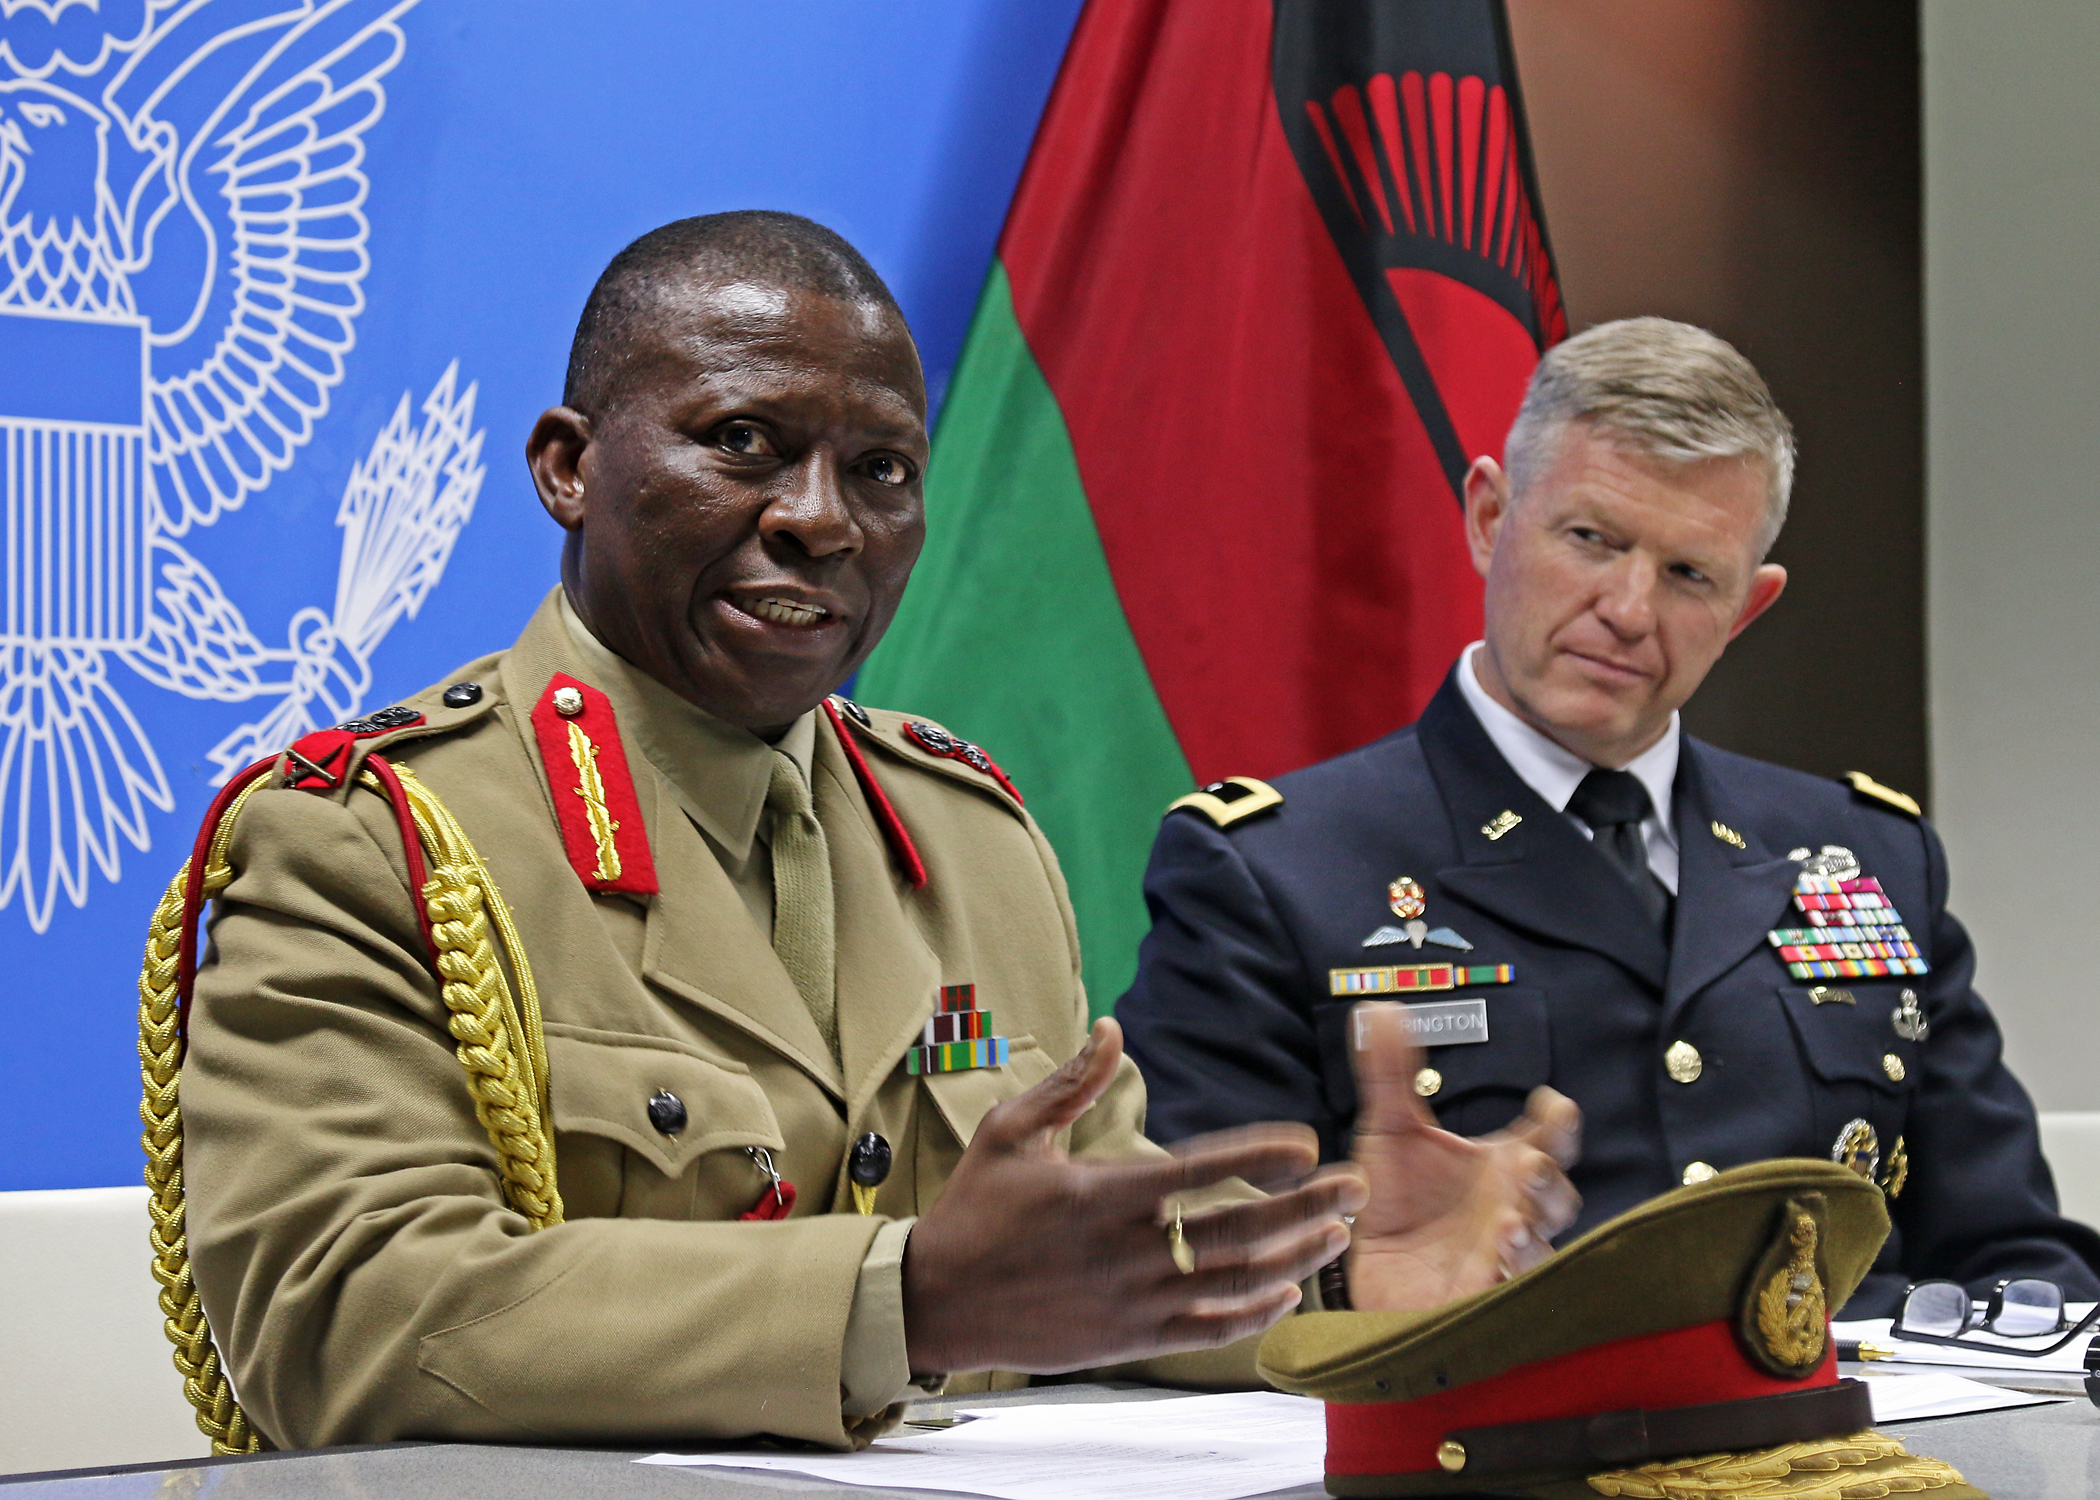 "Gen. Griffin ""Spoon"" Phiri (left), Malawi Defense Force chief of staff, and Maj. Gen. Joseph Harrington, commander of U.S. Army Africa, answer questions during a press conference after the conclusion of African Land Forces Summit 2017, in Lilongwe, Malawi, May 11, 2017. ALFS is an annual, weeklong seminar bringing together land force chiefs from across Africa for candid dialog to discuss and develop cooperative solutions to regional and transregional challenges and threats. (U.S. Army photo by Sgt. Paige Behringer/Released)"